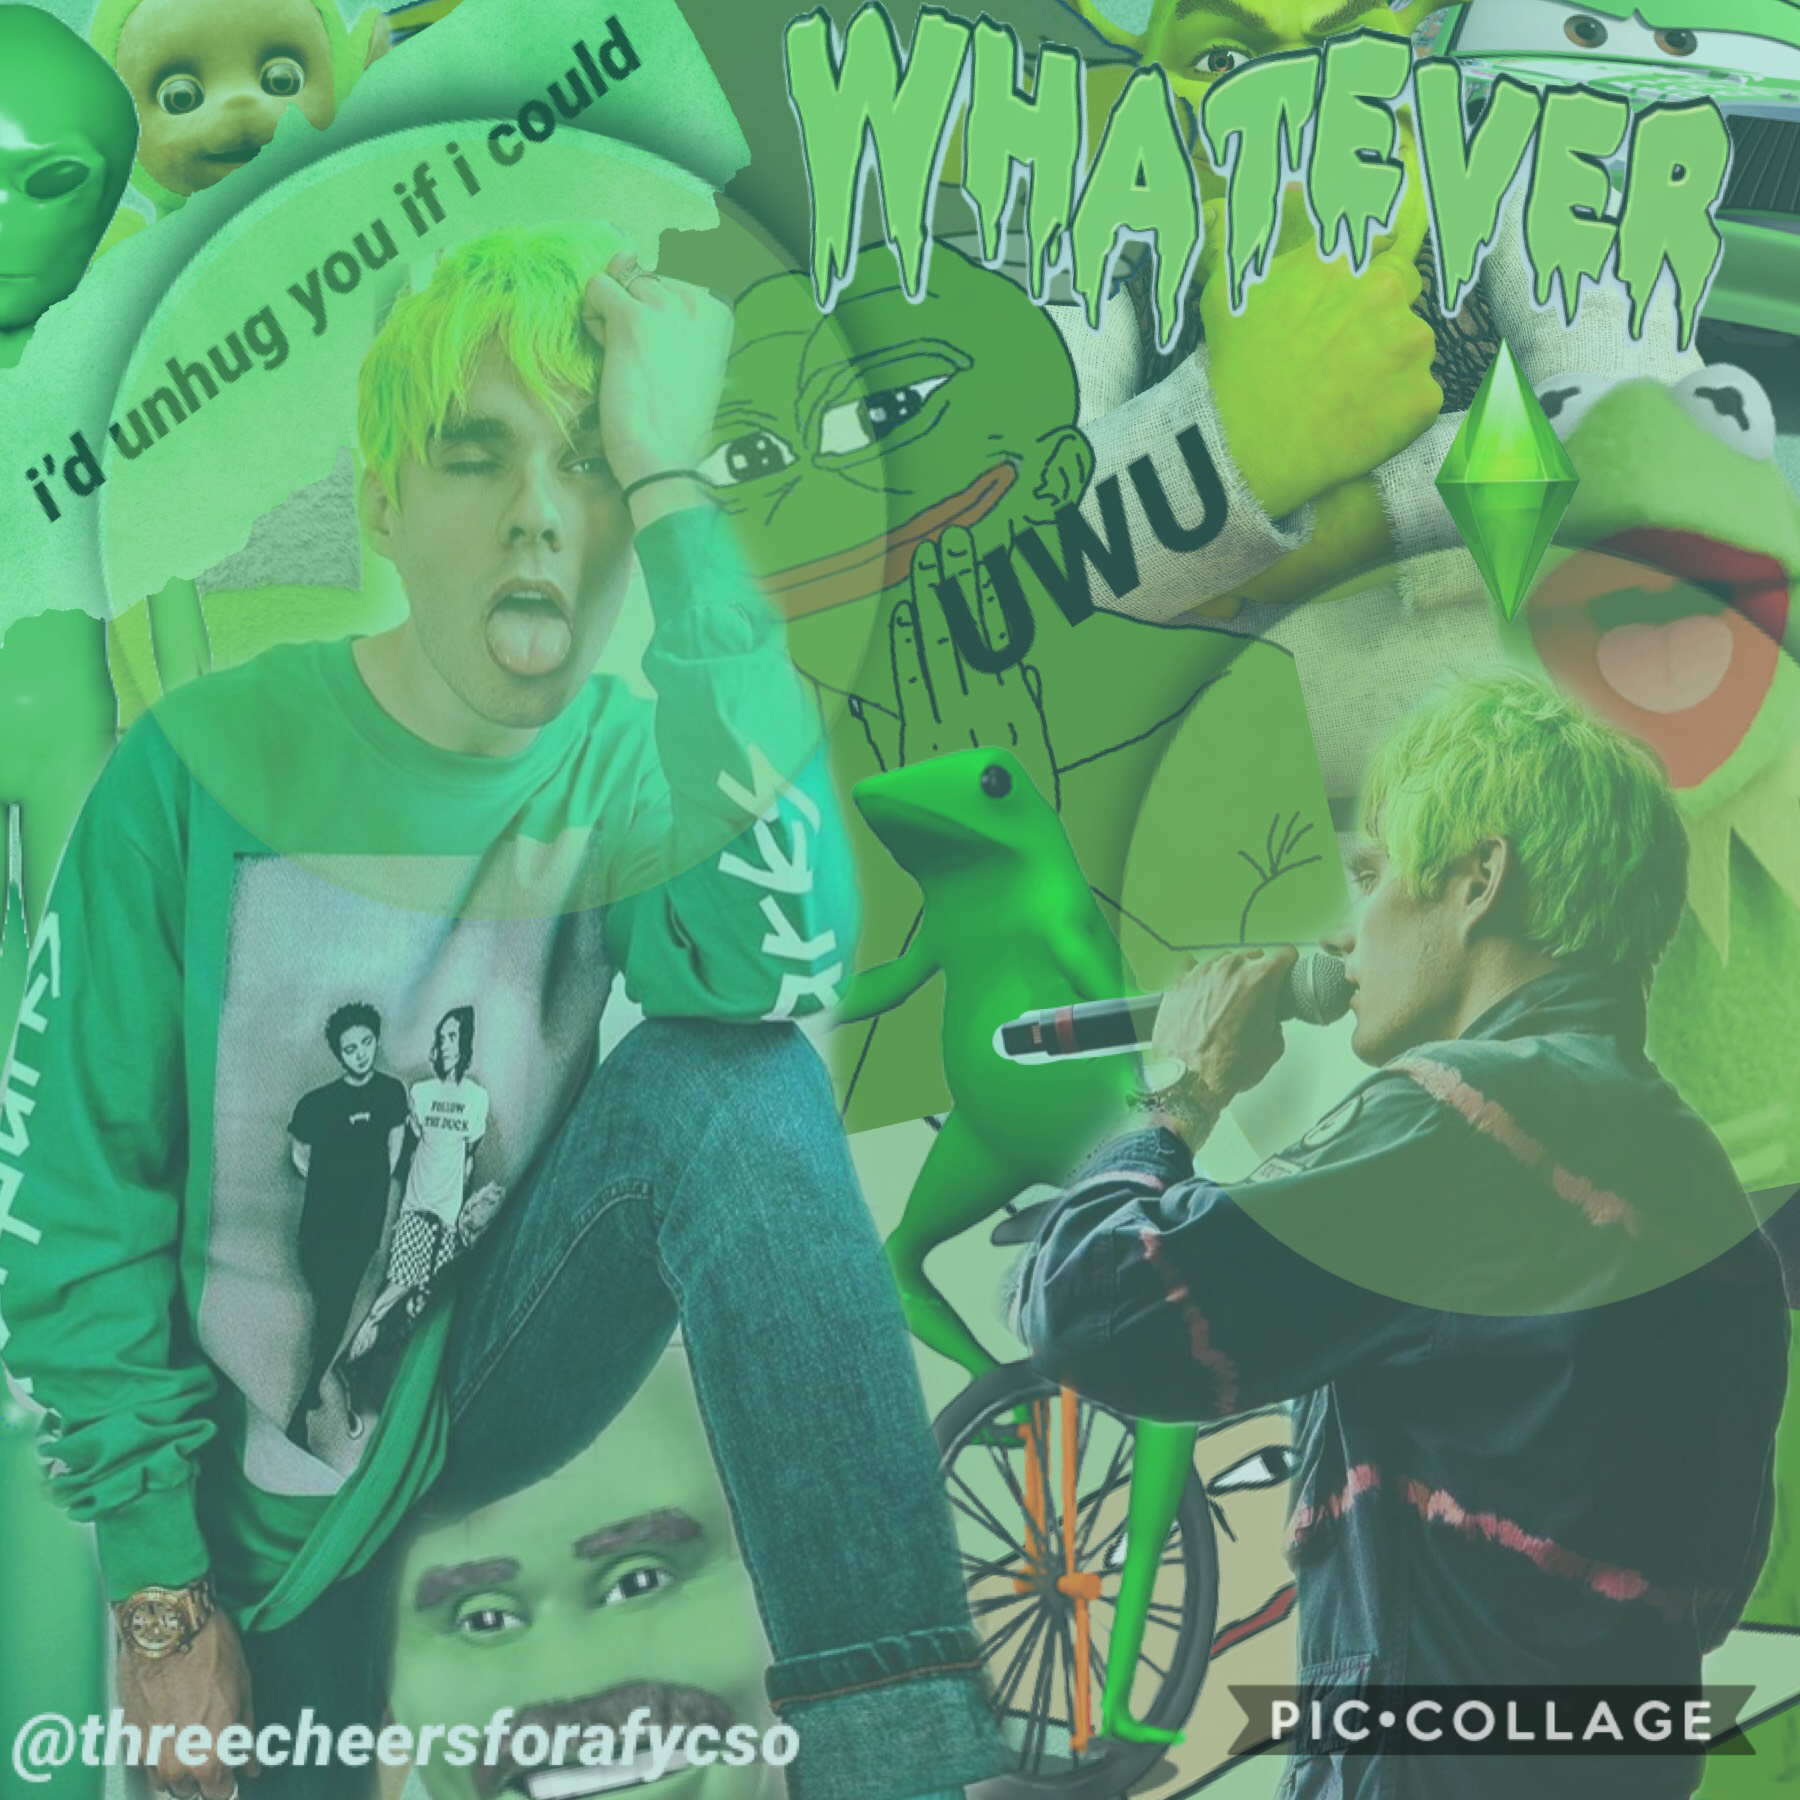 awsten is so babey🥺  i have now become a full fob stan. jesus i love them so much. drop your favorite fob song (i know this has nothing to do with parx but sjdj)